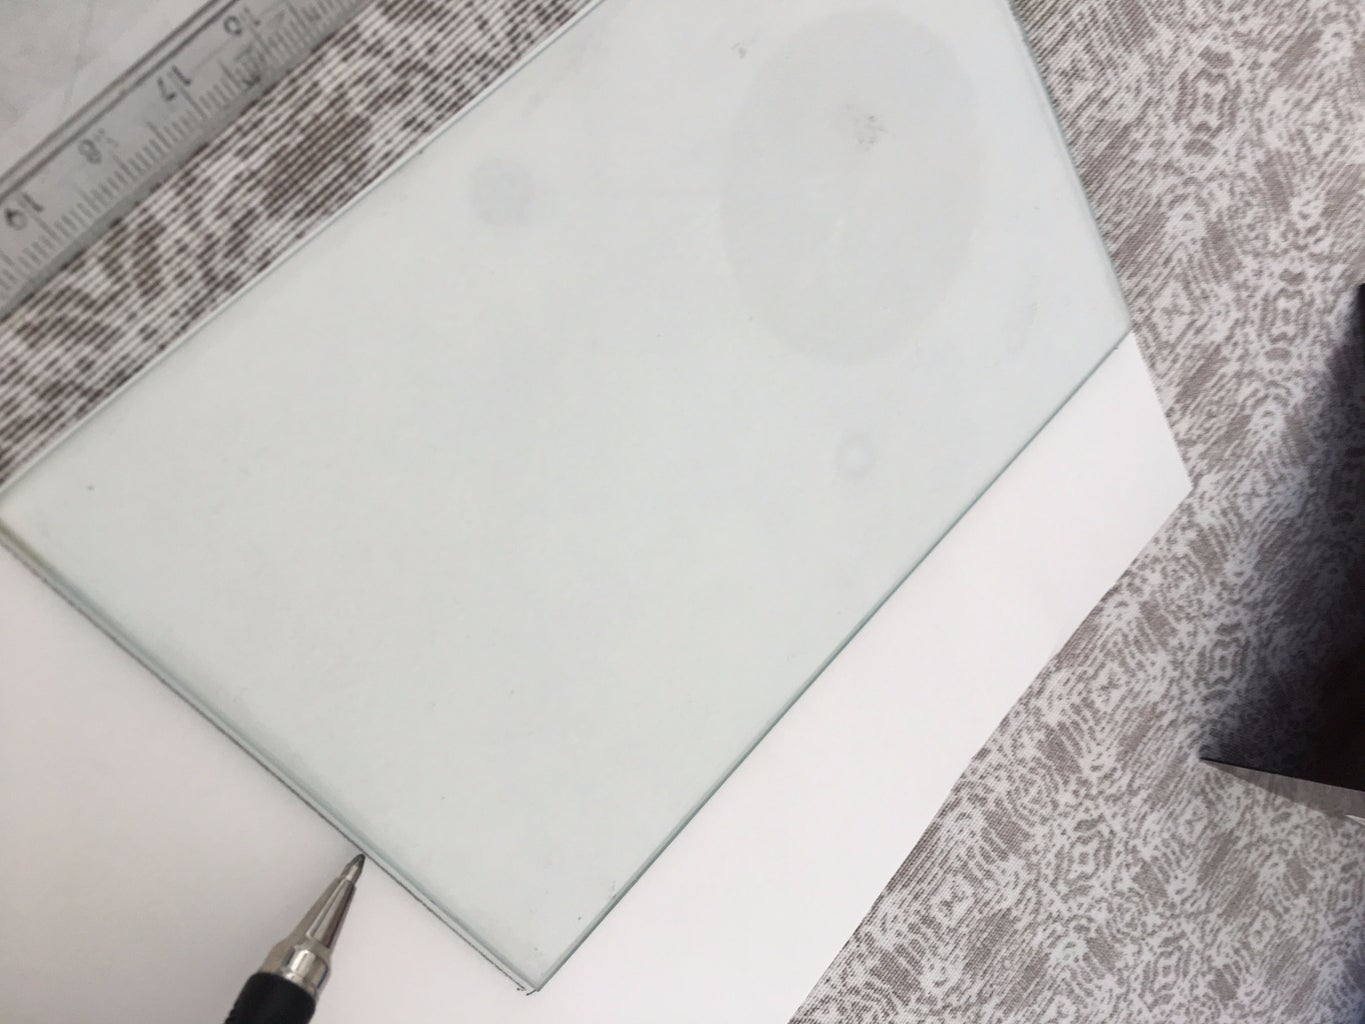 Remove Glass Cover From Photo Frame and Cut Cardstock